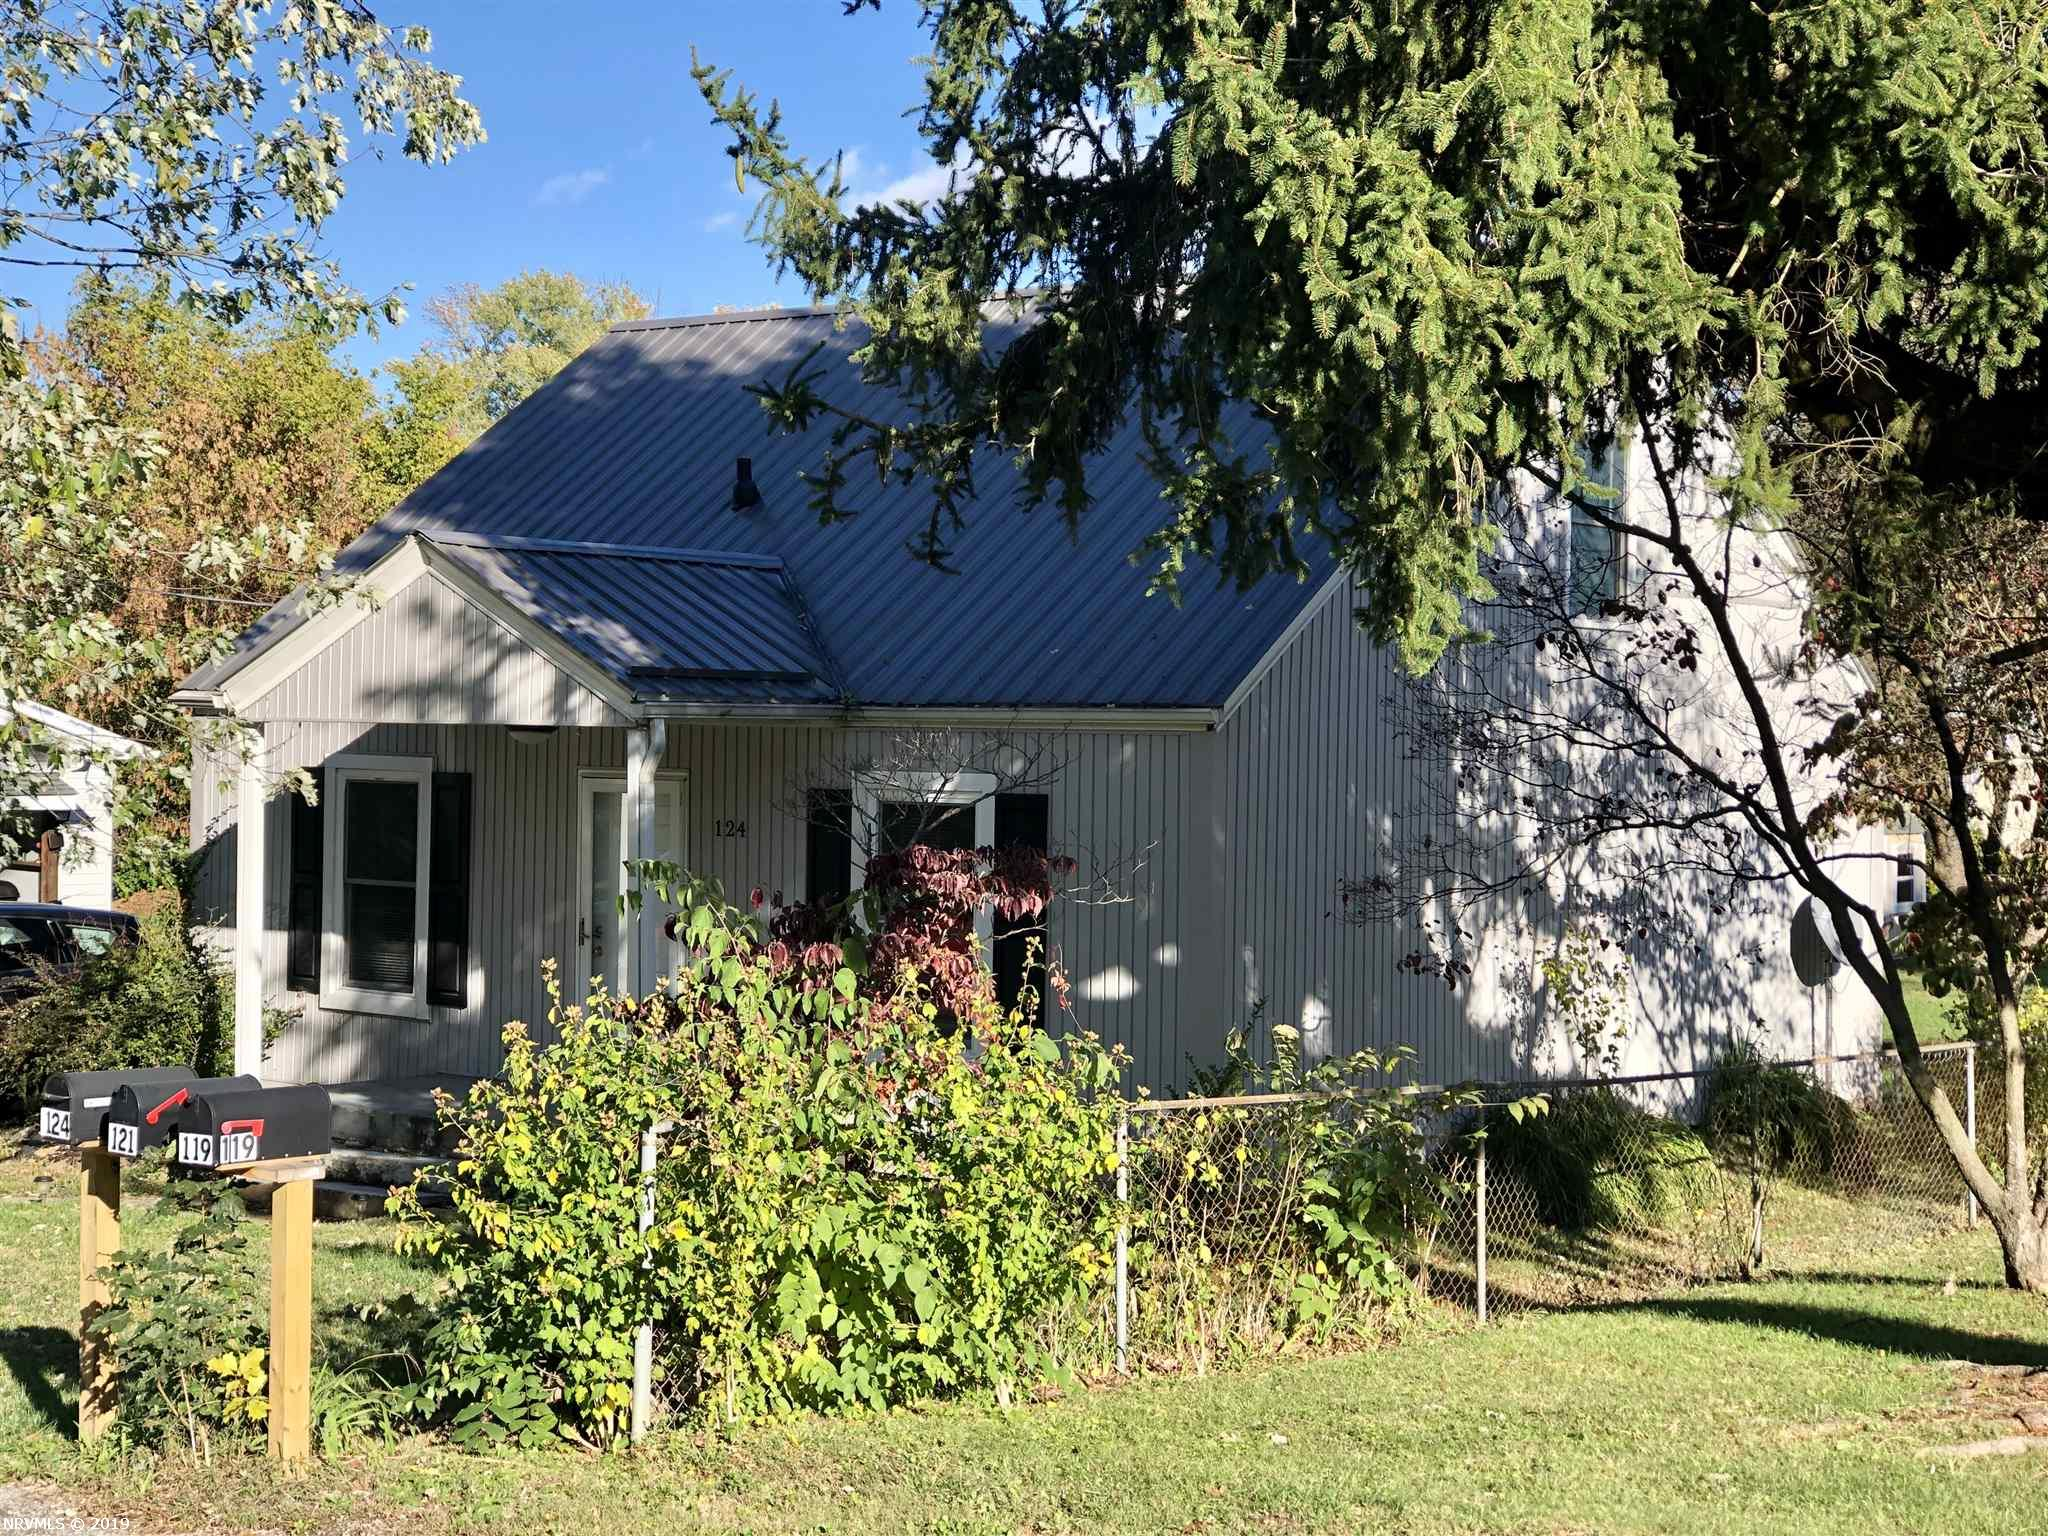 This home is move in ready.  Convenient to Radford University and New River Community College.  This home was renovated in 2015. Updates include oak hardwood floors, heat pump, electrical, insulated windows and a new metal roof.  The home also has a nice flat back yard.